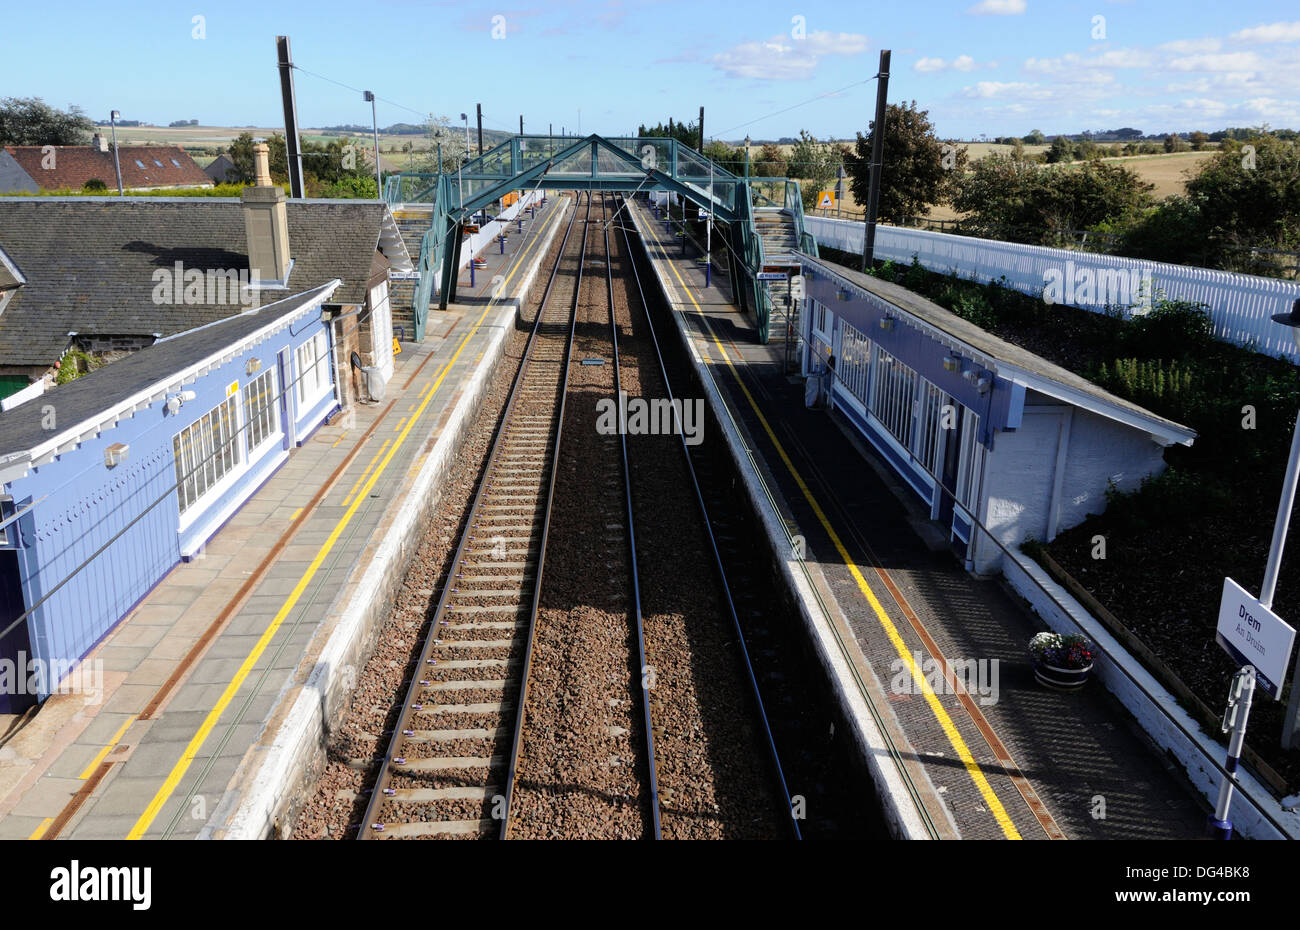 Drem railway station, East Lothian, Scotland - Stock Image